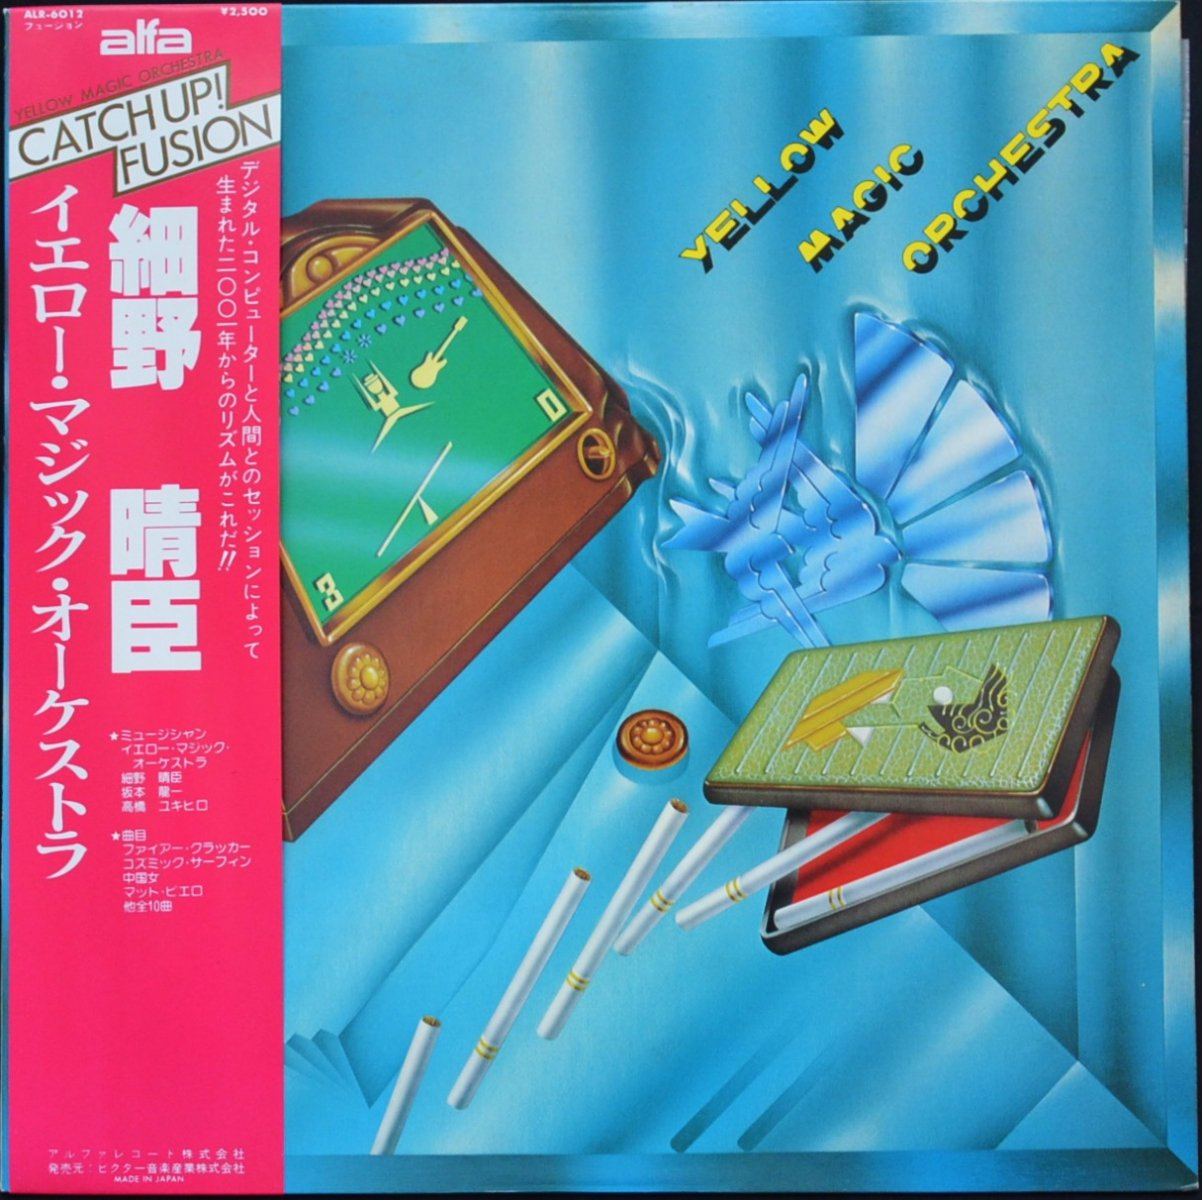 イエロー・マジック・オーケストラ YELLOW MAGIC ORCHESTRA (細野晴臣,HARUOMI HOSONO) / YELLOW MAGIC ORCHESTRA (LP)